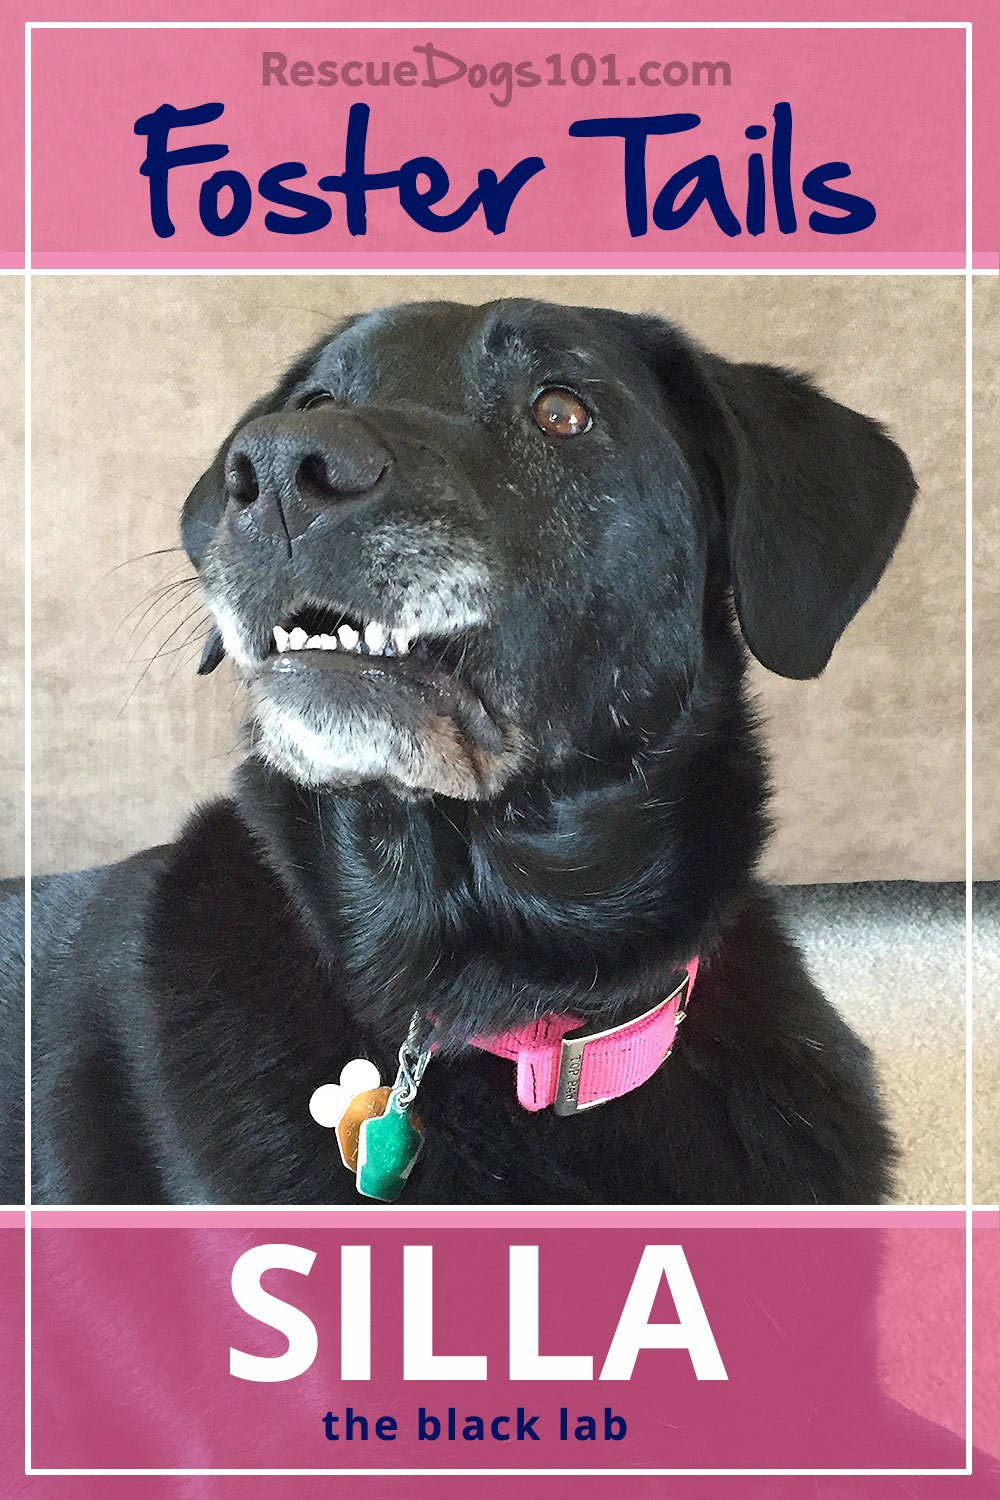 Foster Dog Tails, Silla the Black Lab – Our story about being Silla's foster family